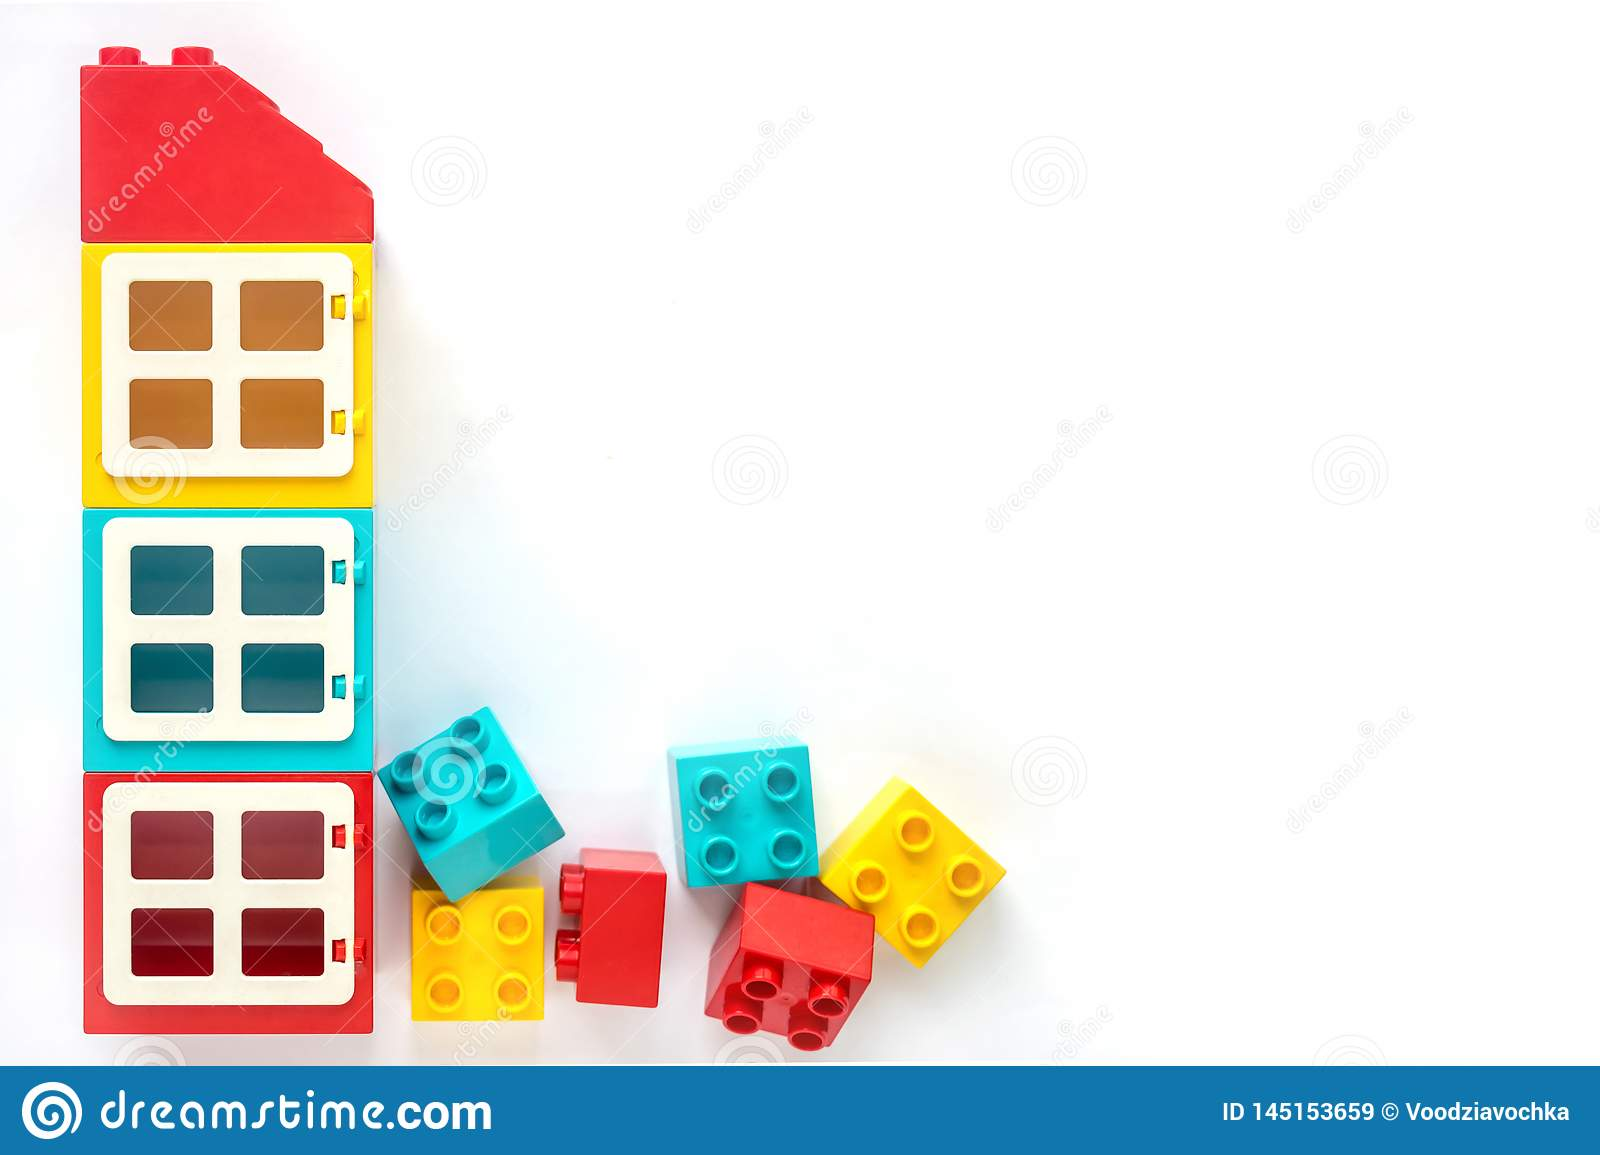 Lego bricks. House of Small and big plastic constructor bricks on white background. Popular toys. Free space for text